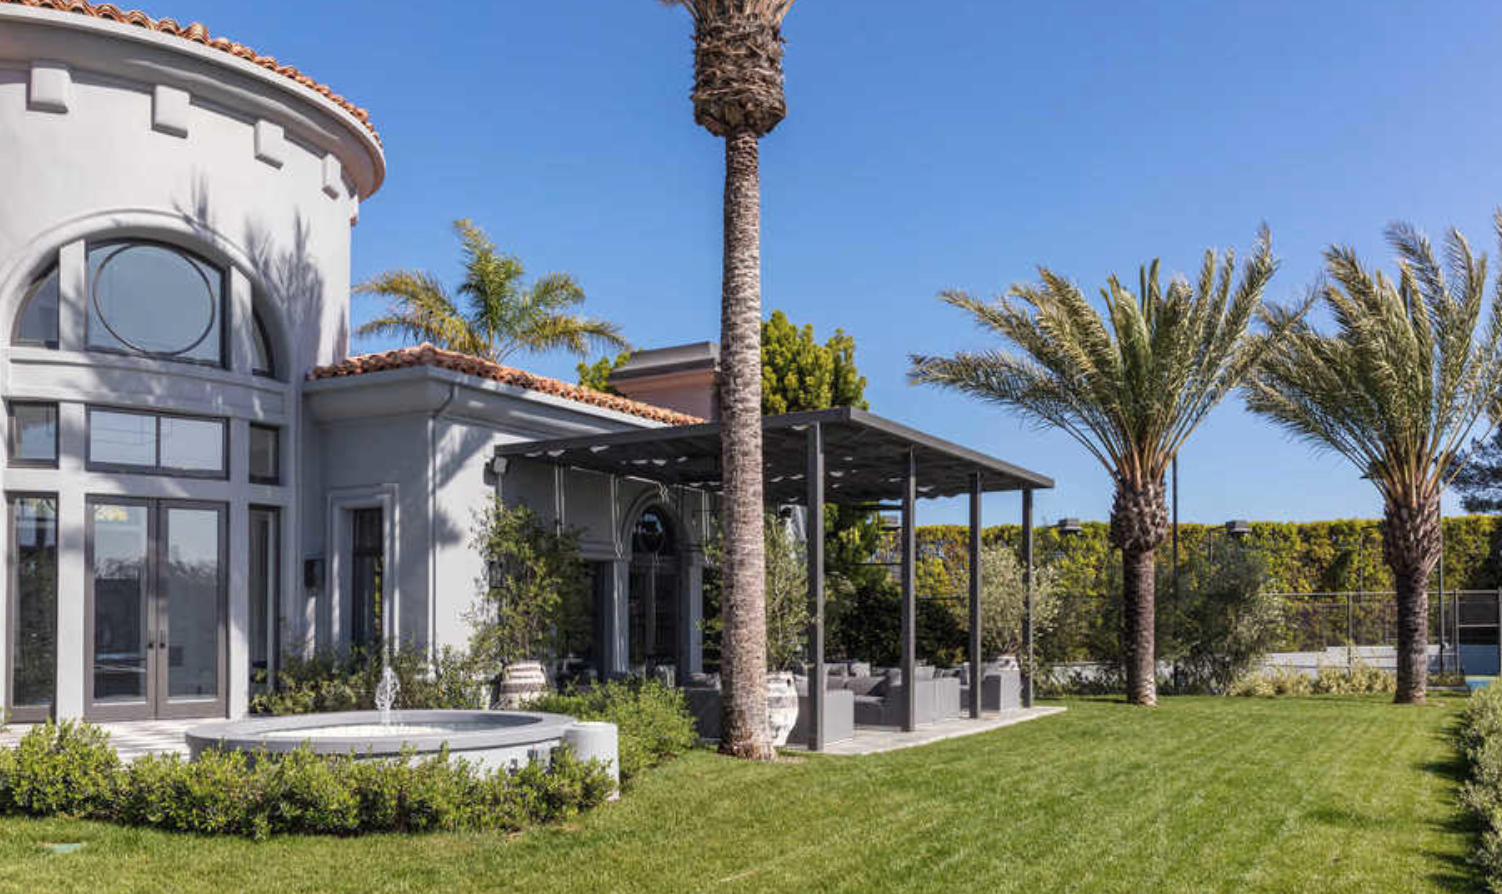 Kylie Jenner S Rent At Her Temporary Beverly Hills Home Is